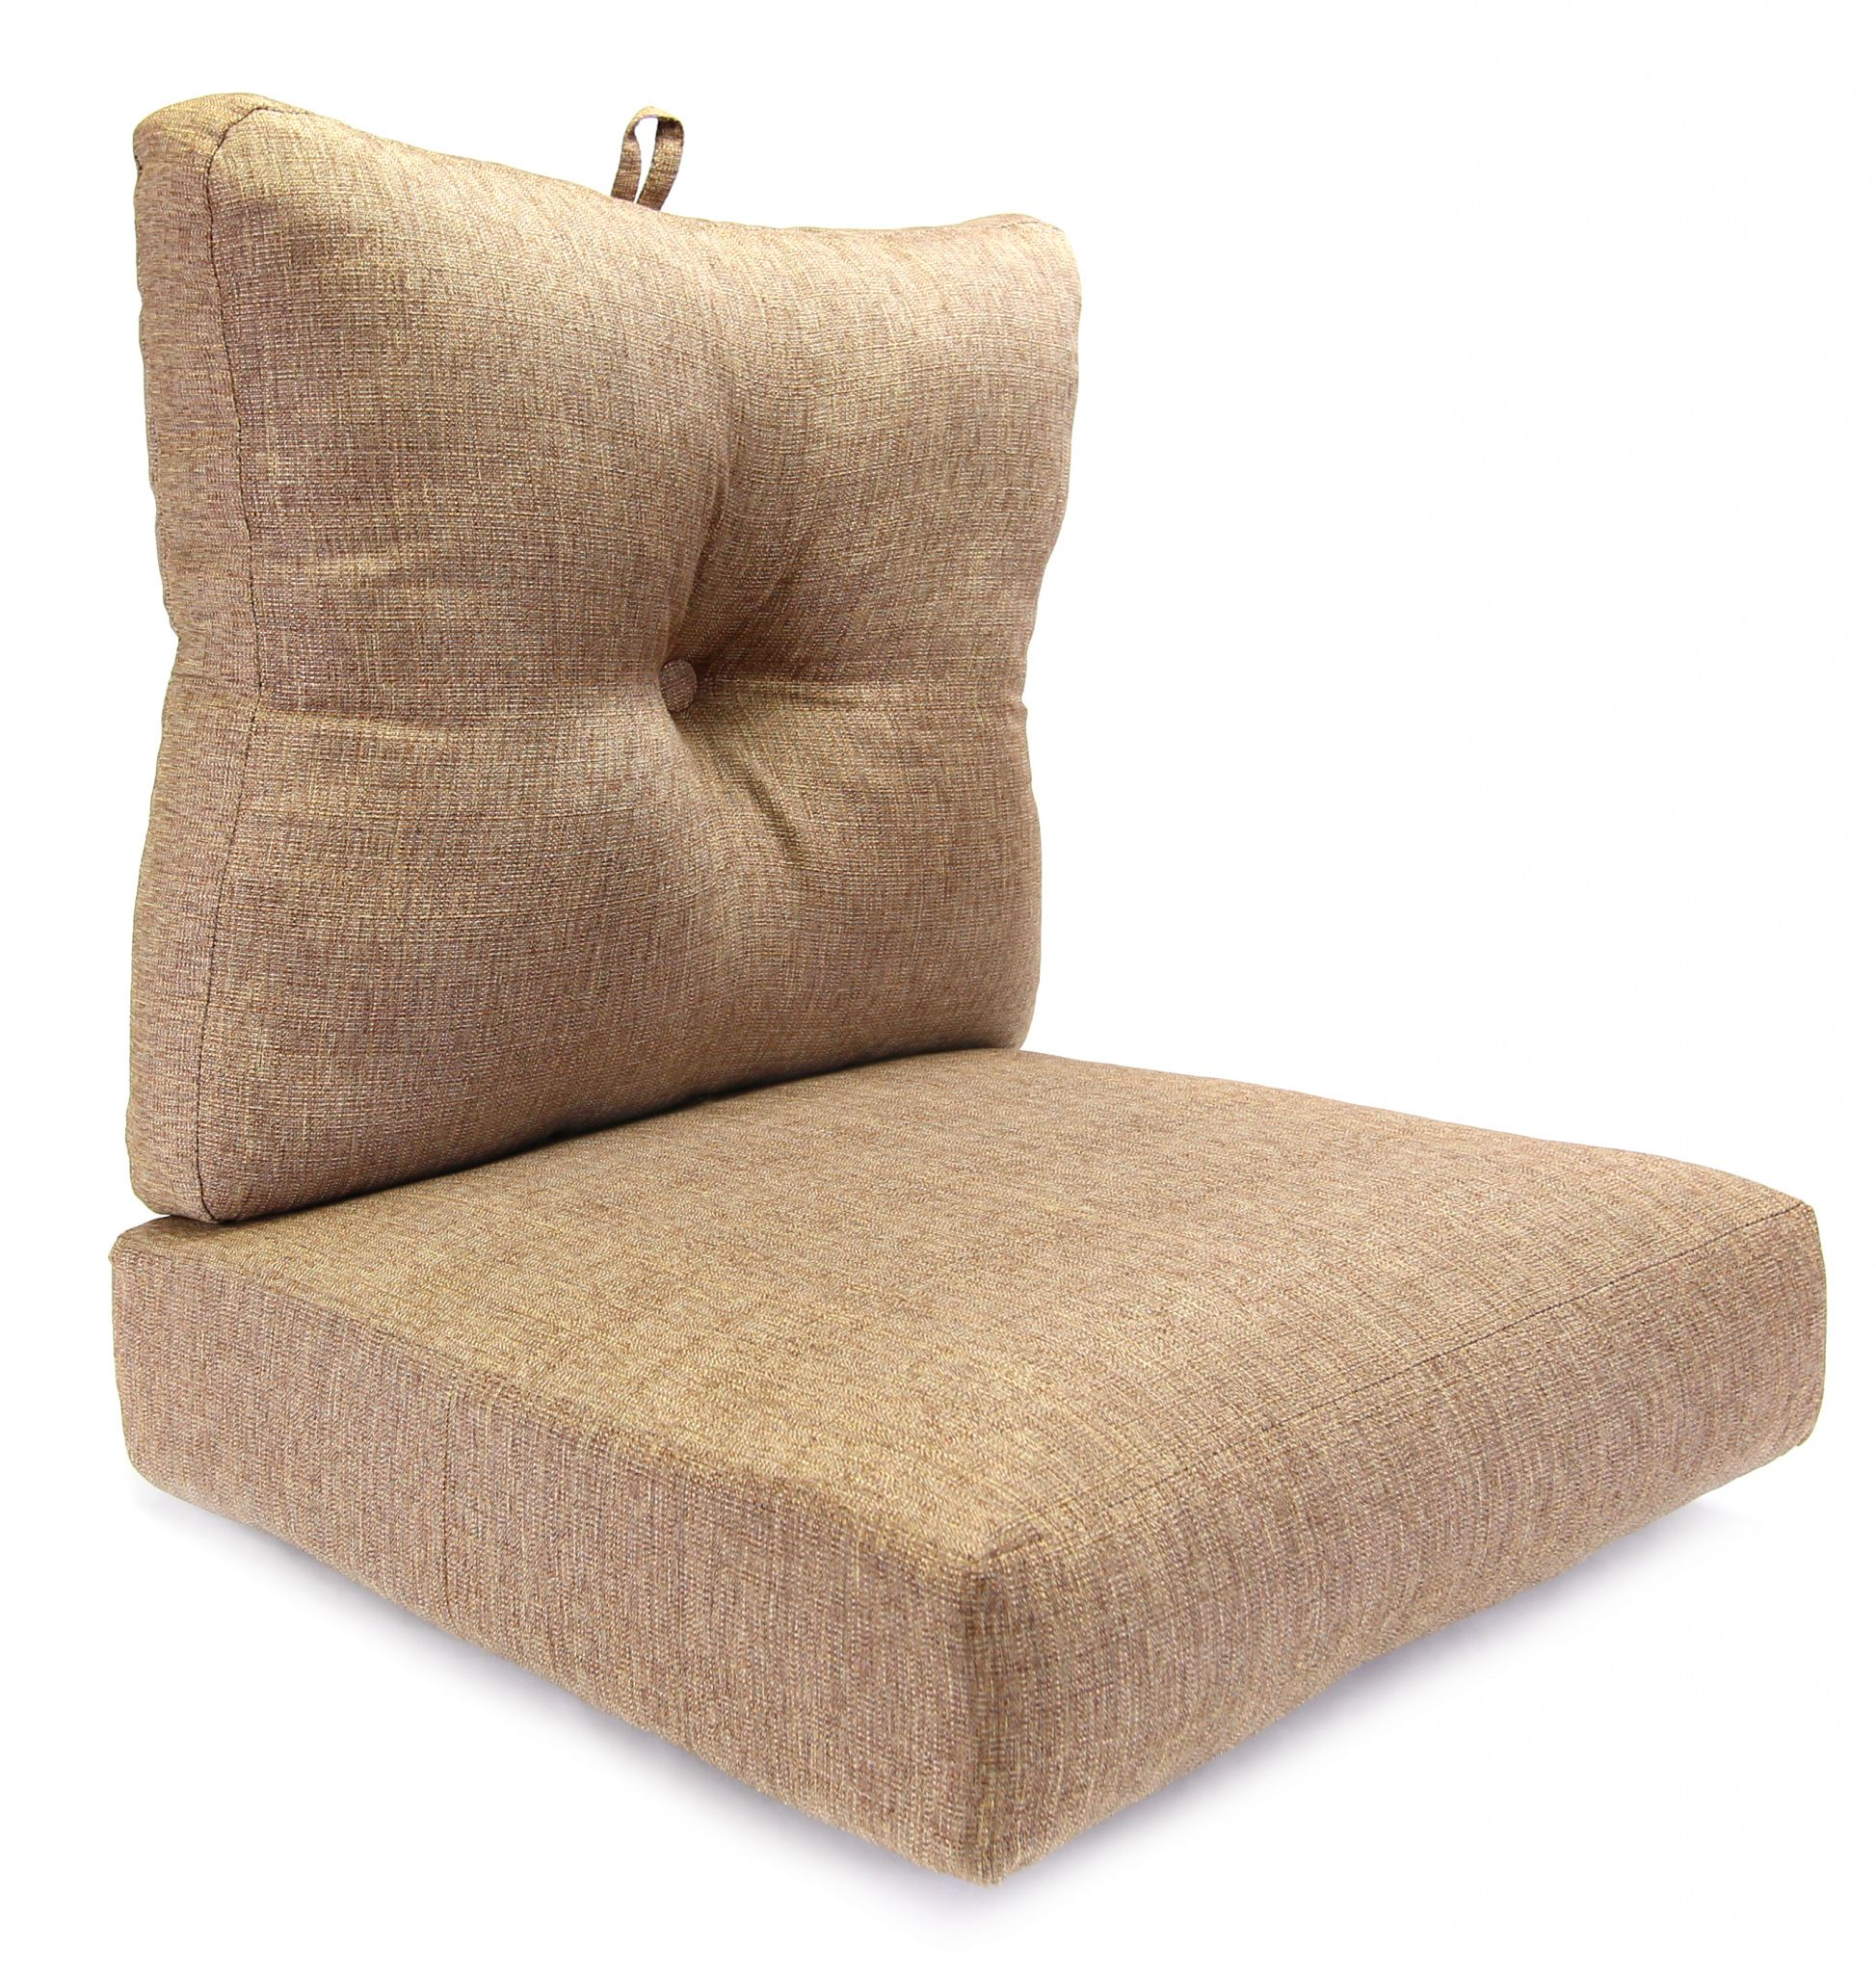 Deep Seat Replacement Cushions for Outdoor Furniture Best